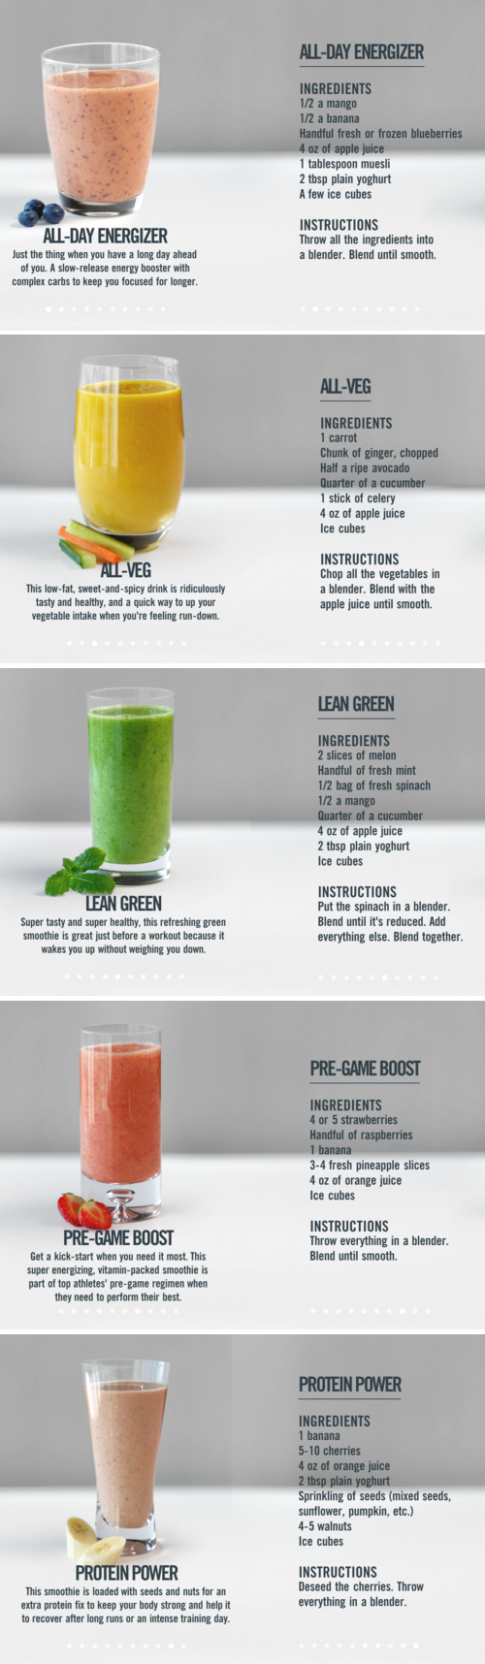 10 Simple Juice Recipes You Need To Try | Yummy smoothies, Clean diet - Simple Recipes Juice